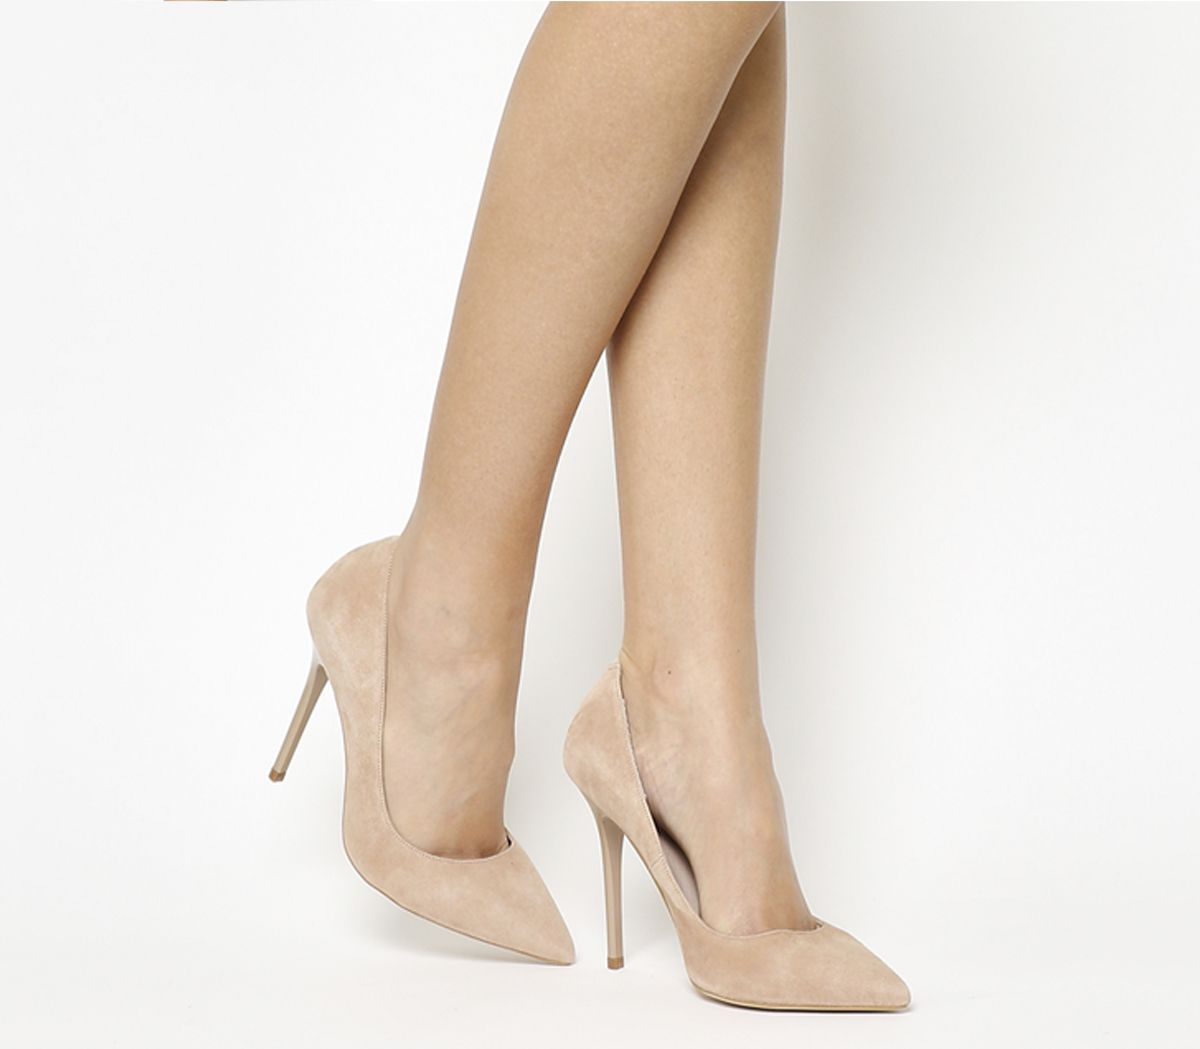 e7a506443878 Office On To Point Court Heels Nude Kid Suede - High Heels